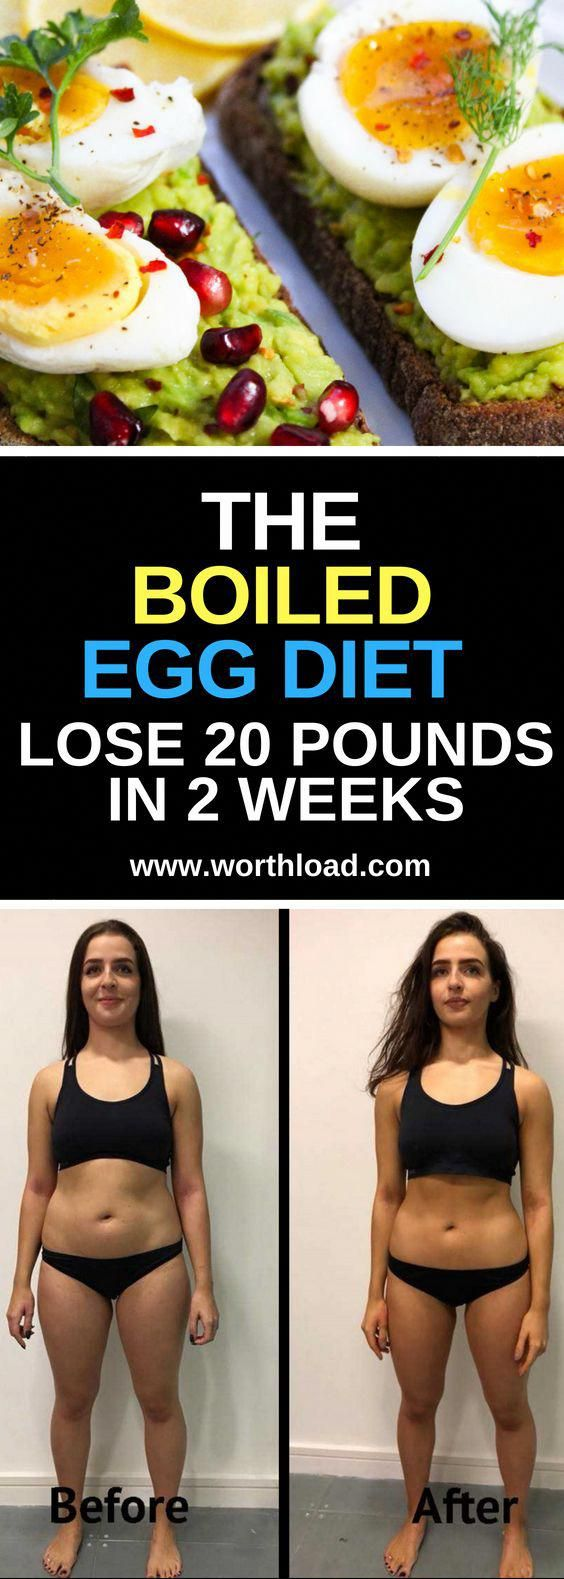 The Boiled Egg Diet Lose 20 Pounds In 2 Weeks